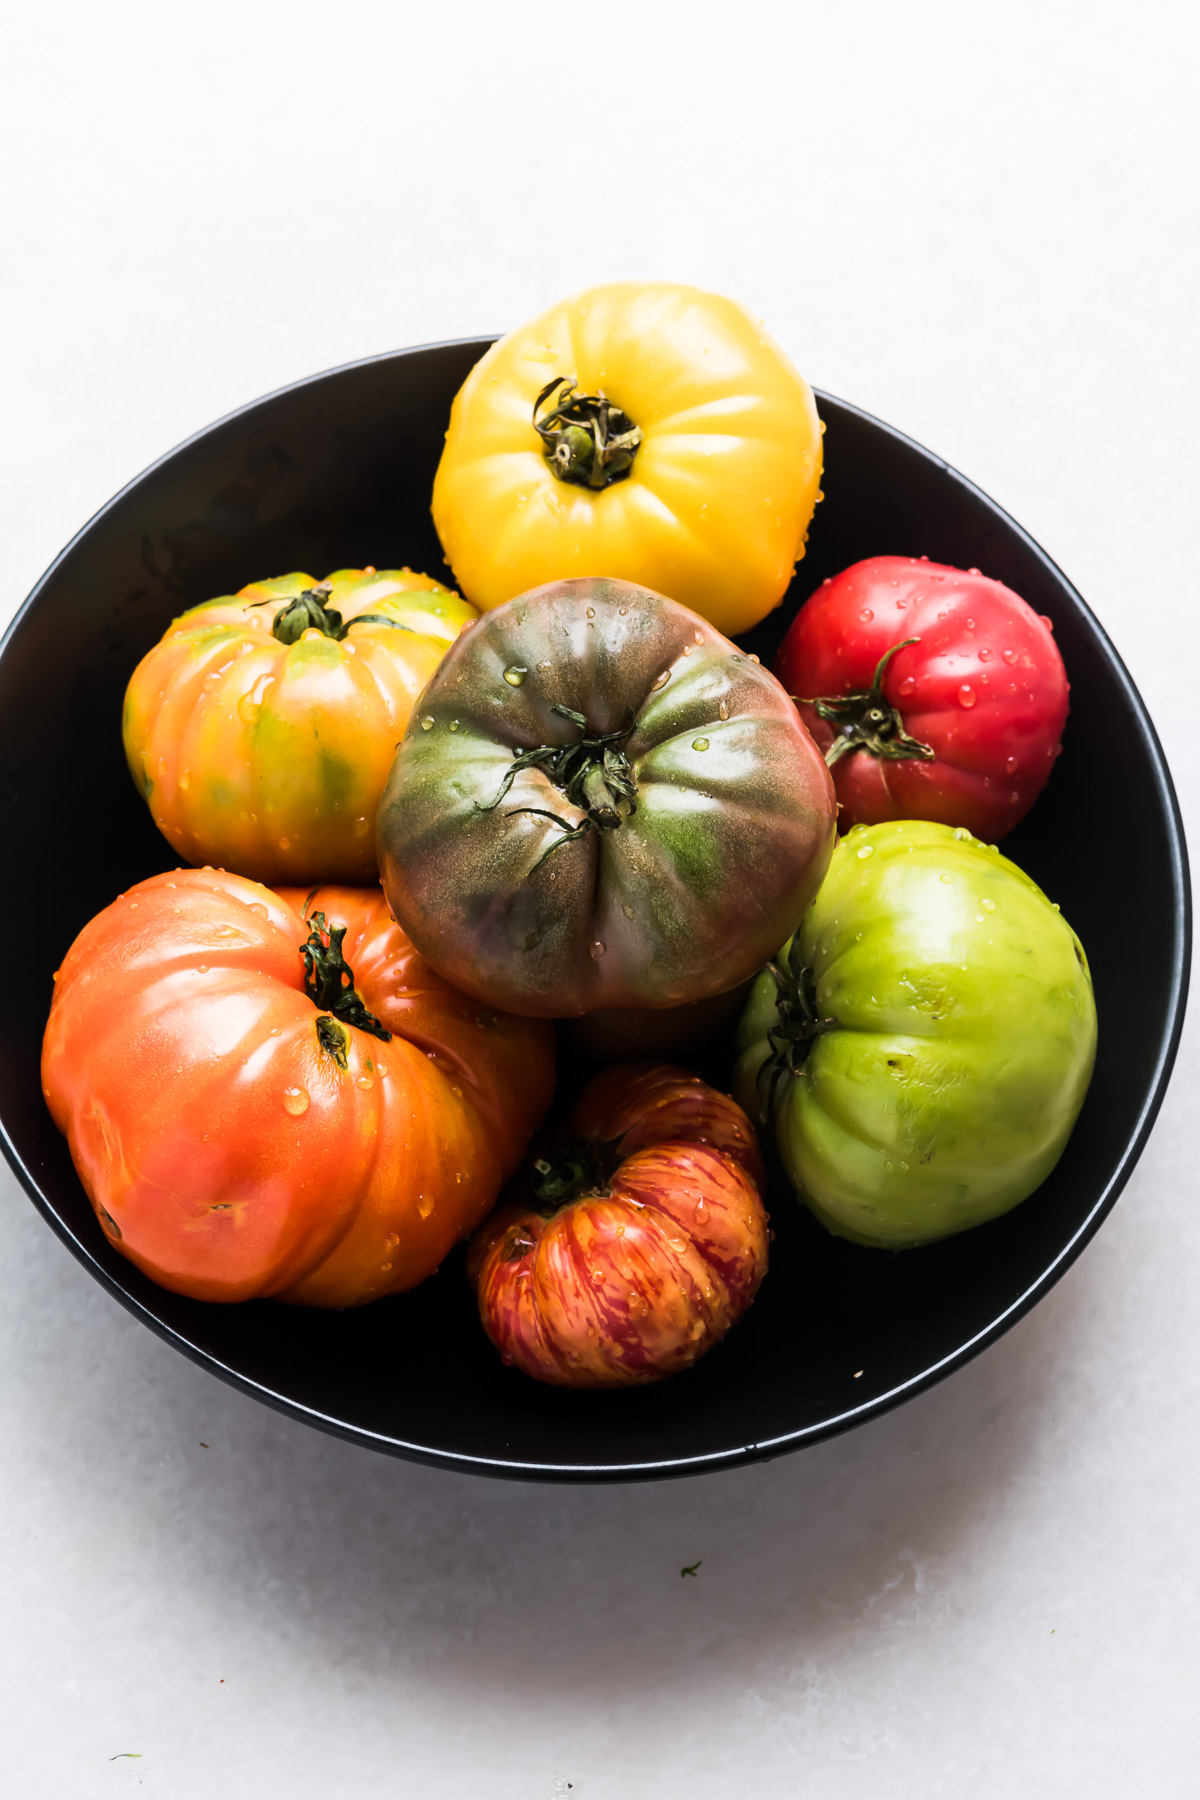 Assorted heirloom tomatoes in a black bowl